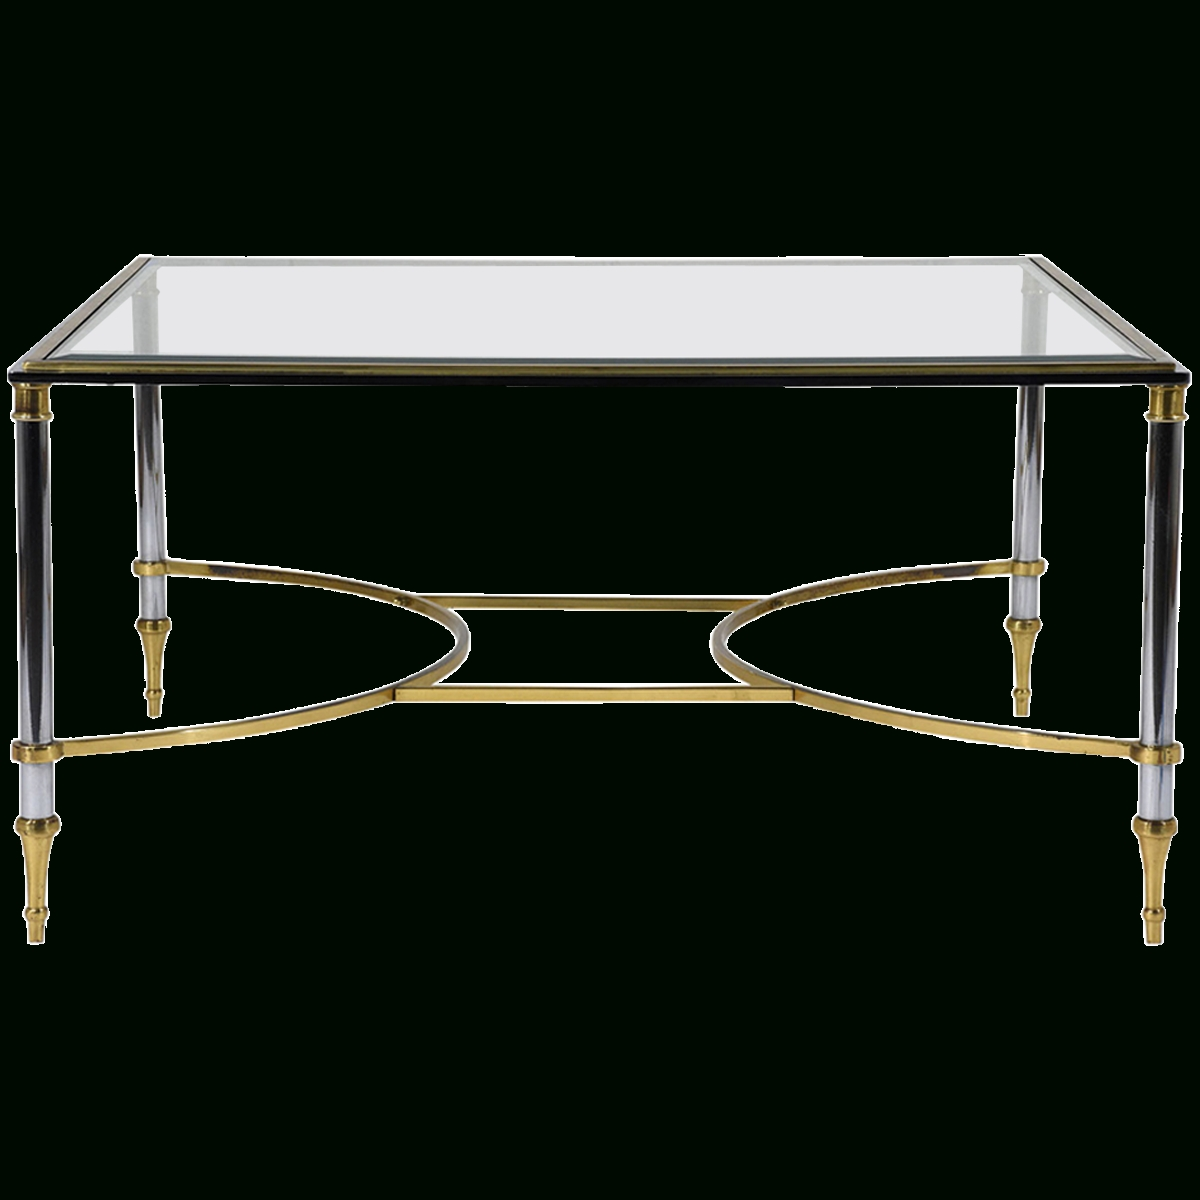 Viyet – Designer Furniture – Tables – Vintage Jansen Style Chrome Inside Current Vintage Glass Coffee Tables (Gallery 20 of 20)